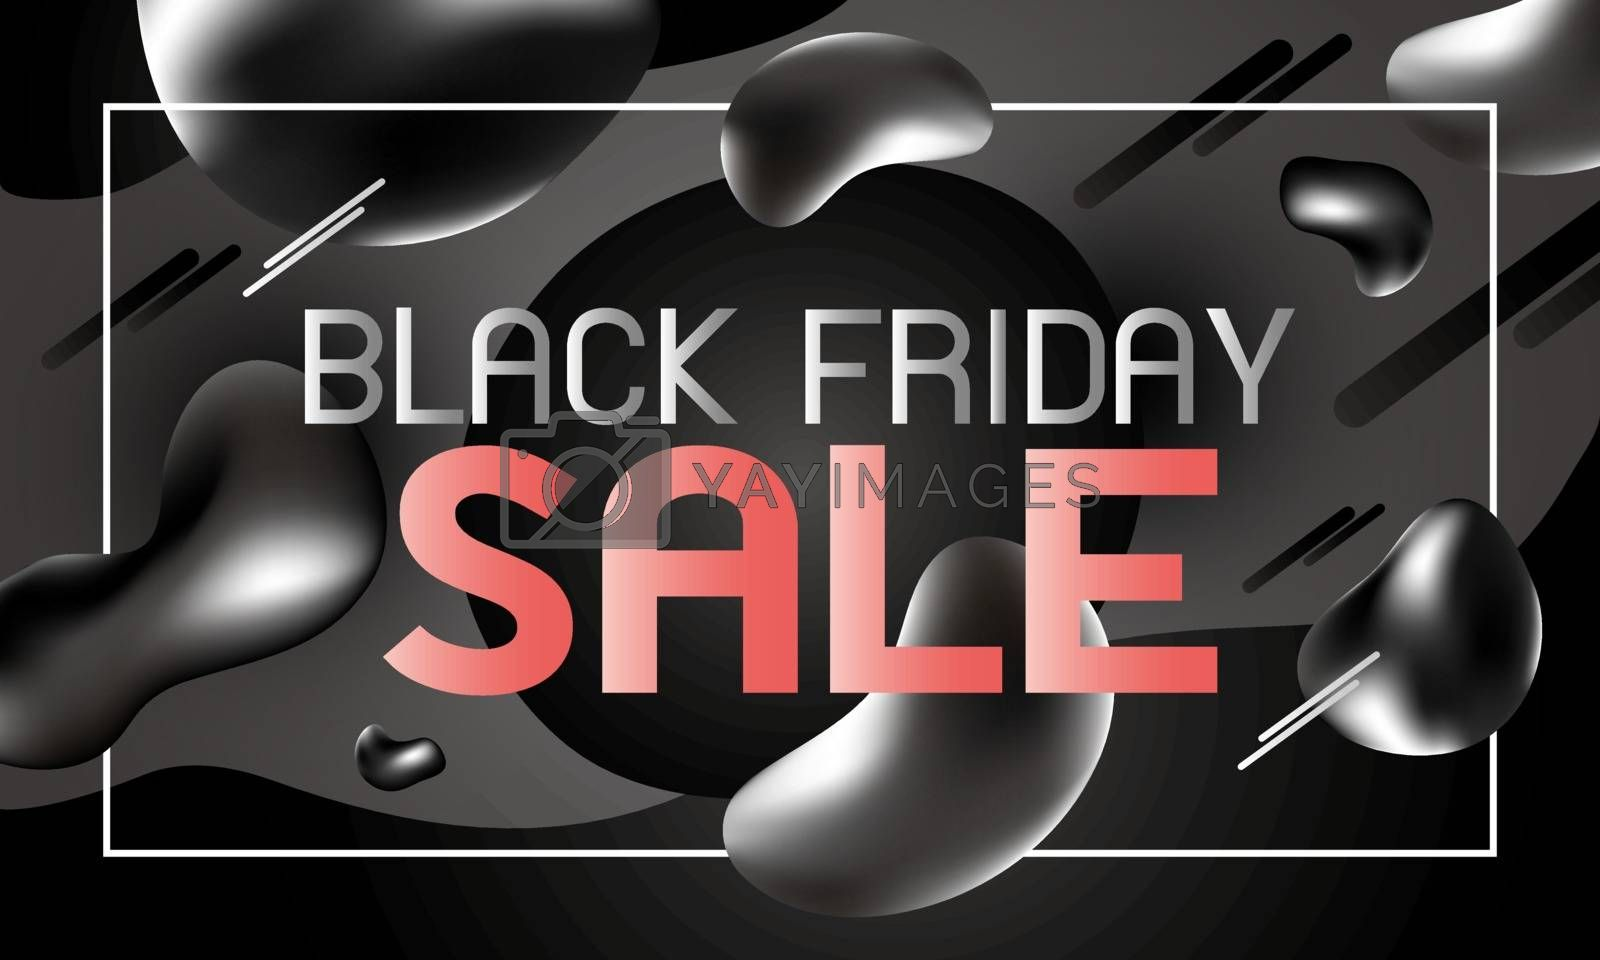 Black friday sale banner design of liquid effect background vector illustration